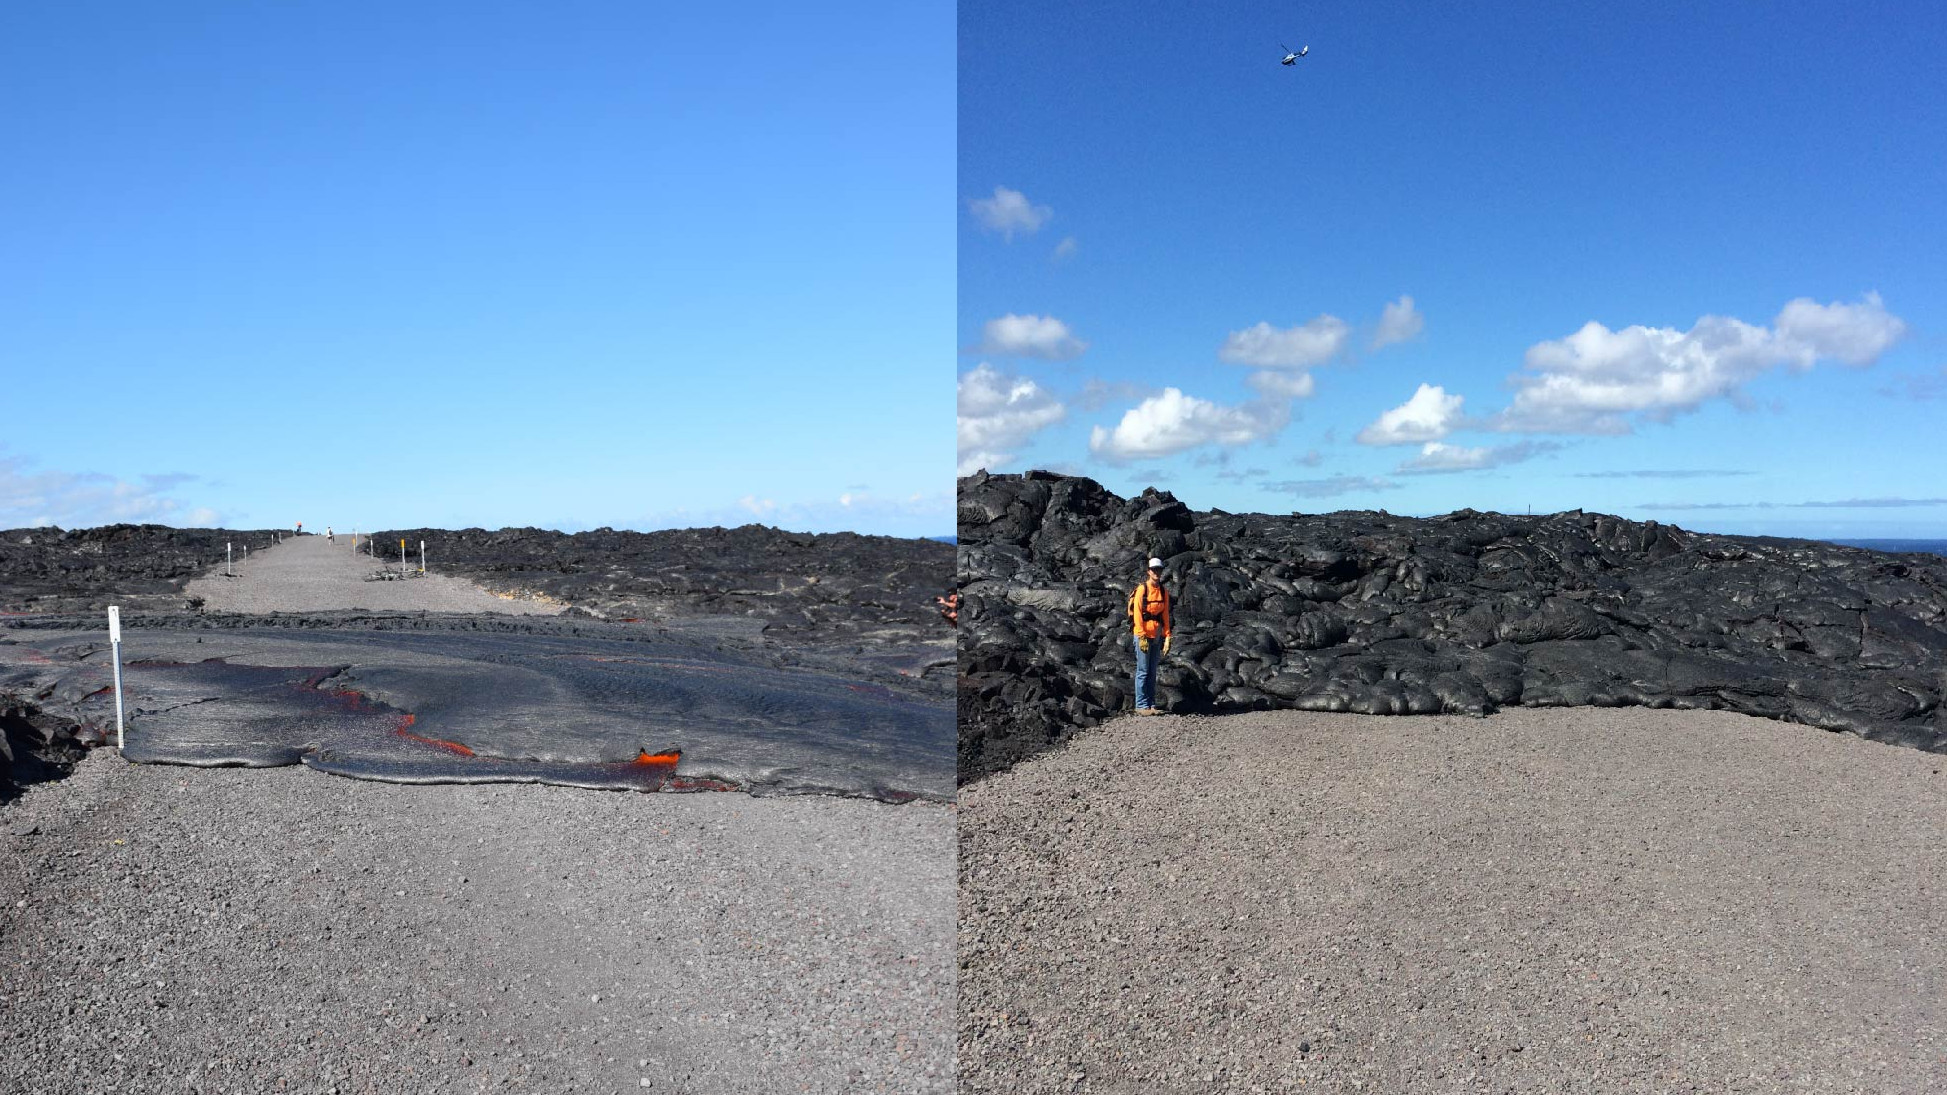 Photo Shows Inflation Of Lava On Emergency Road